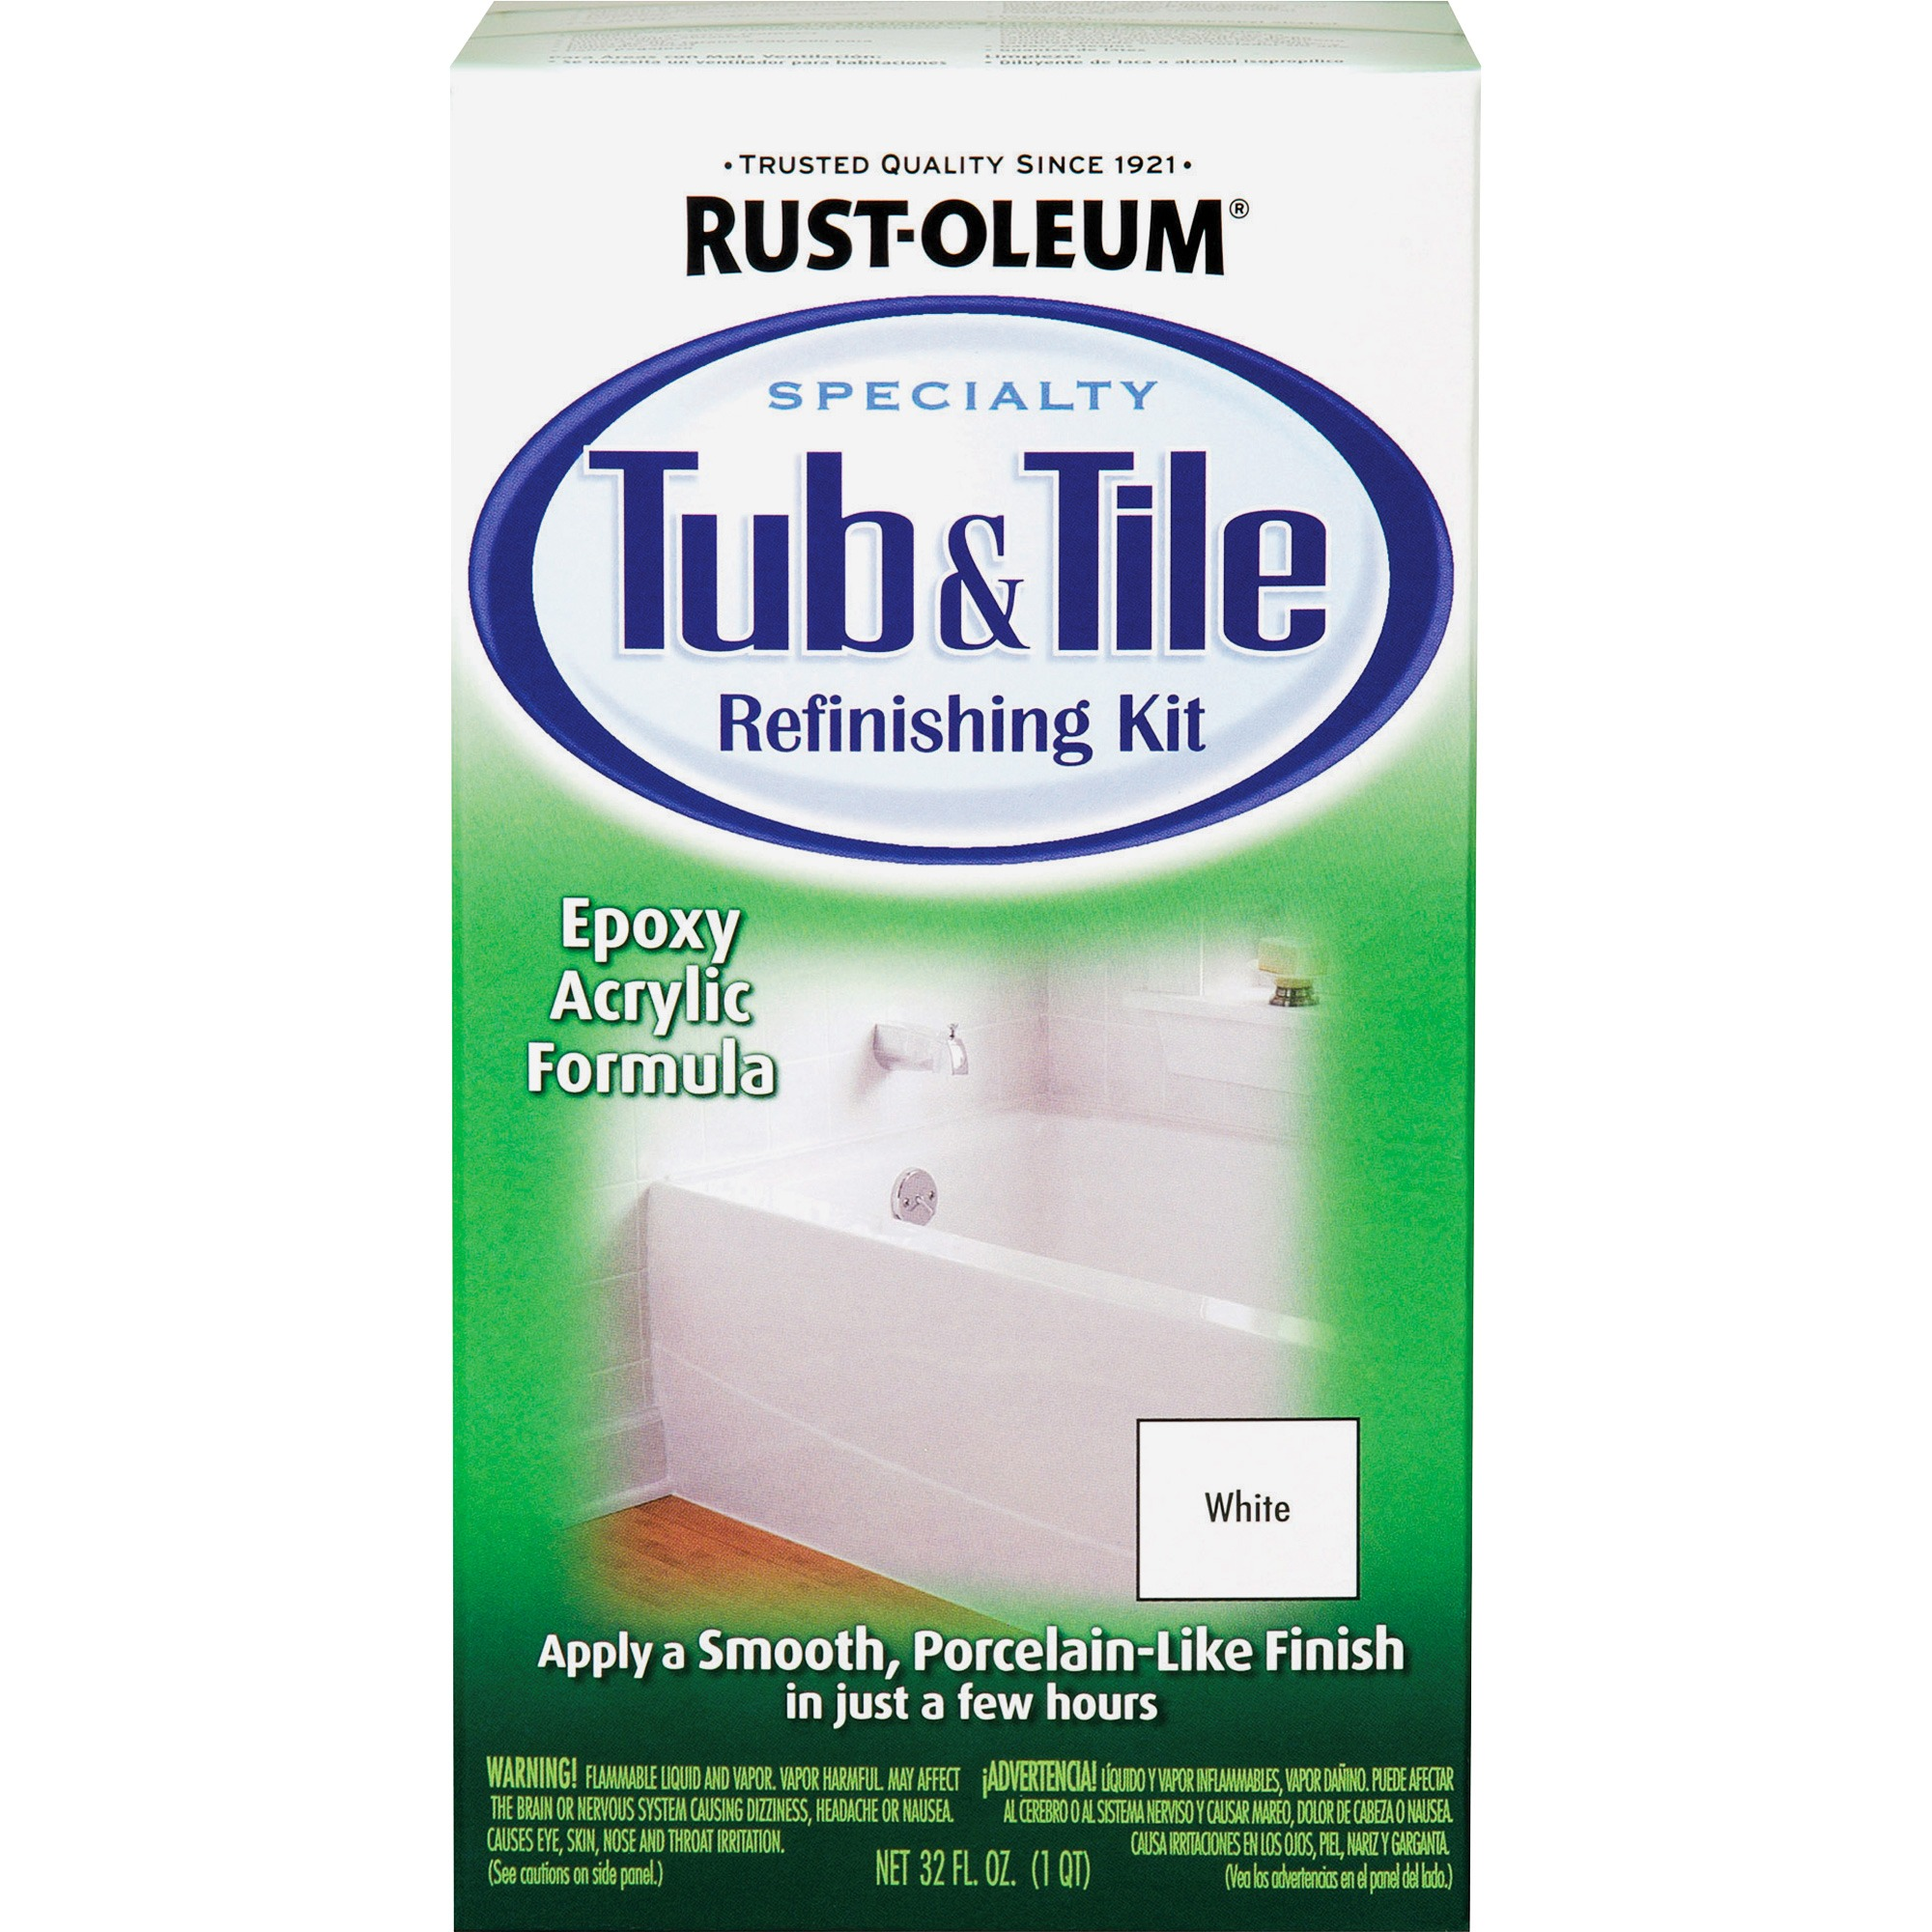 Rust-Oleum, RST7860519, Tub & Tile Refreshing Kit, 1 Kit - Walmart.com